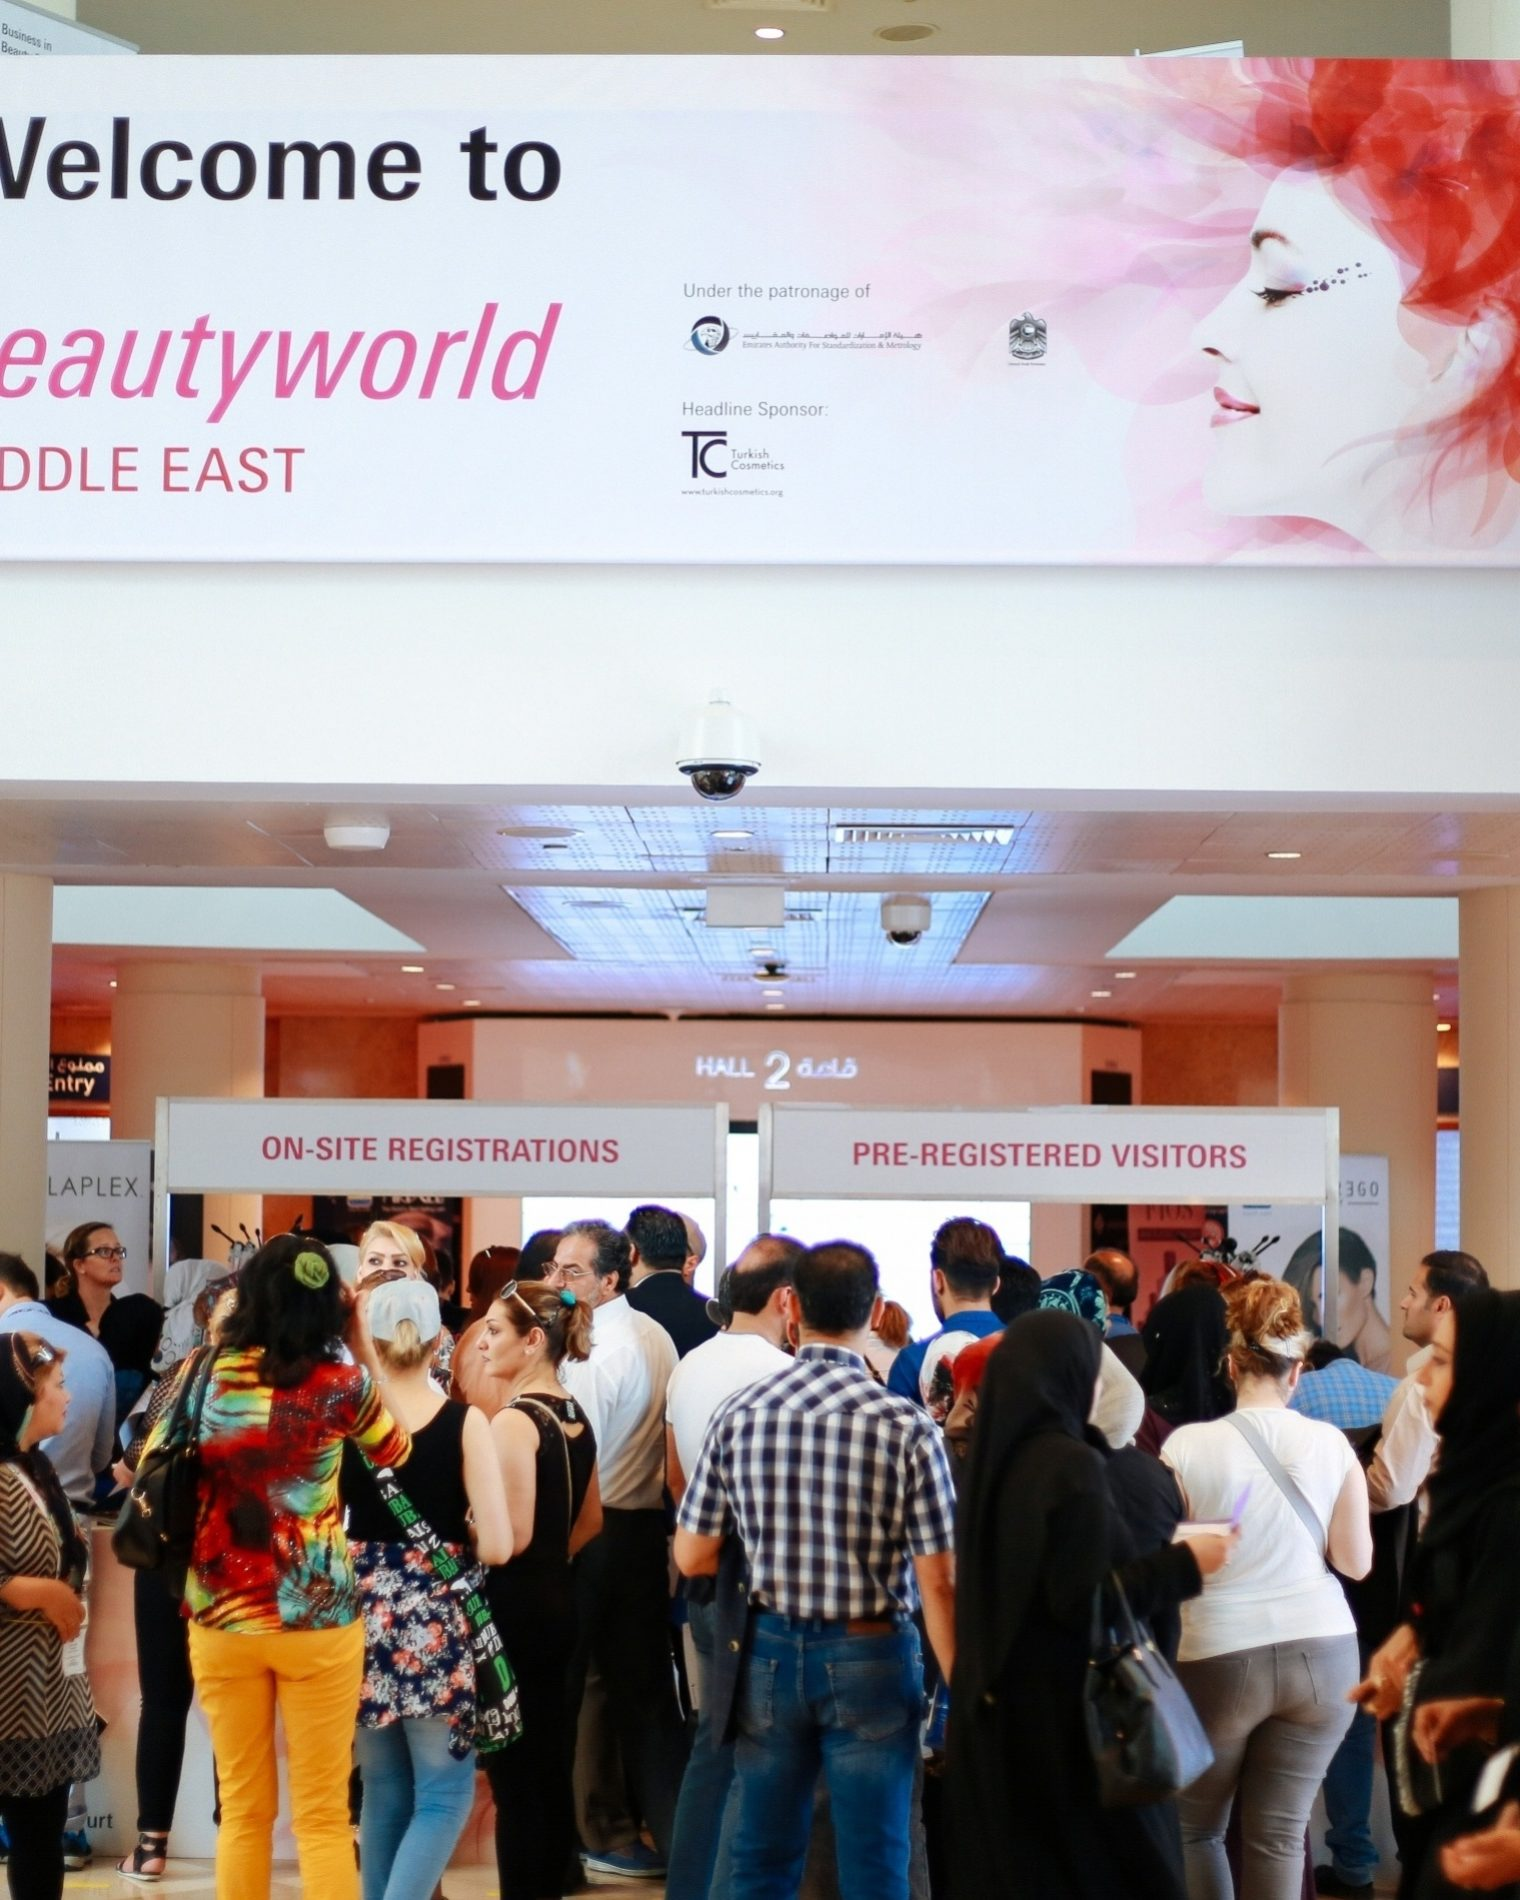 Beauty World Exhibition 2017 in Dubai